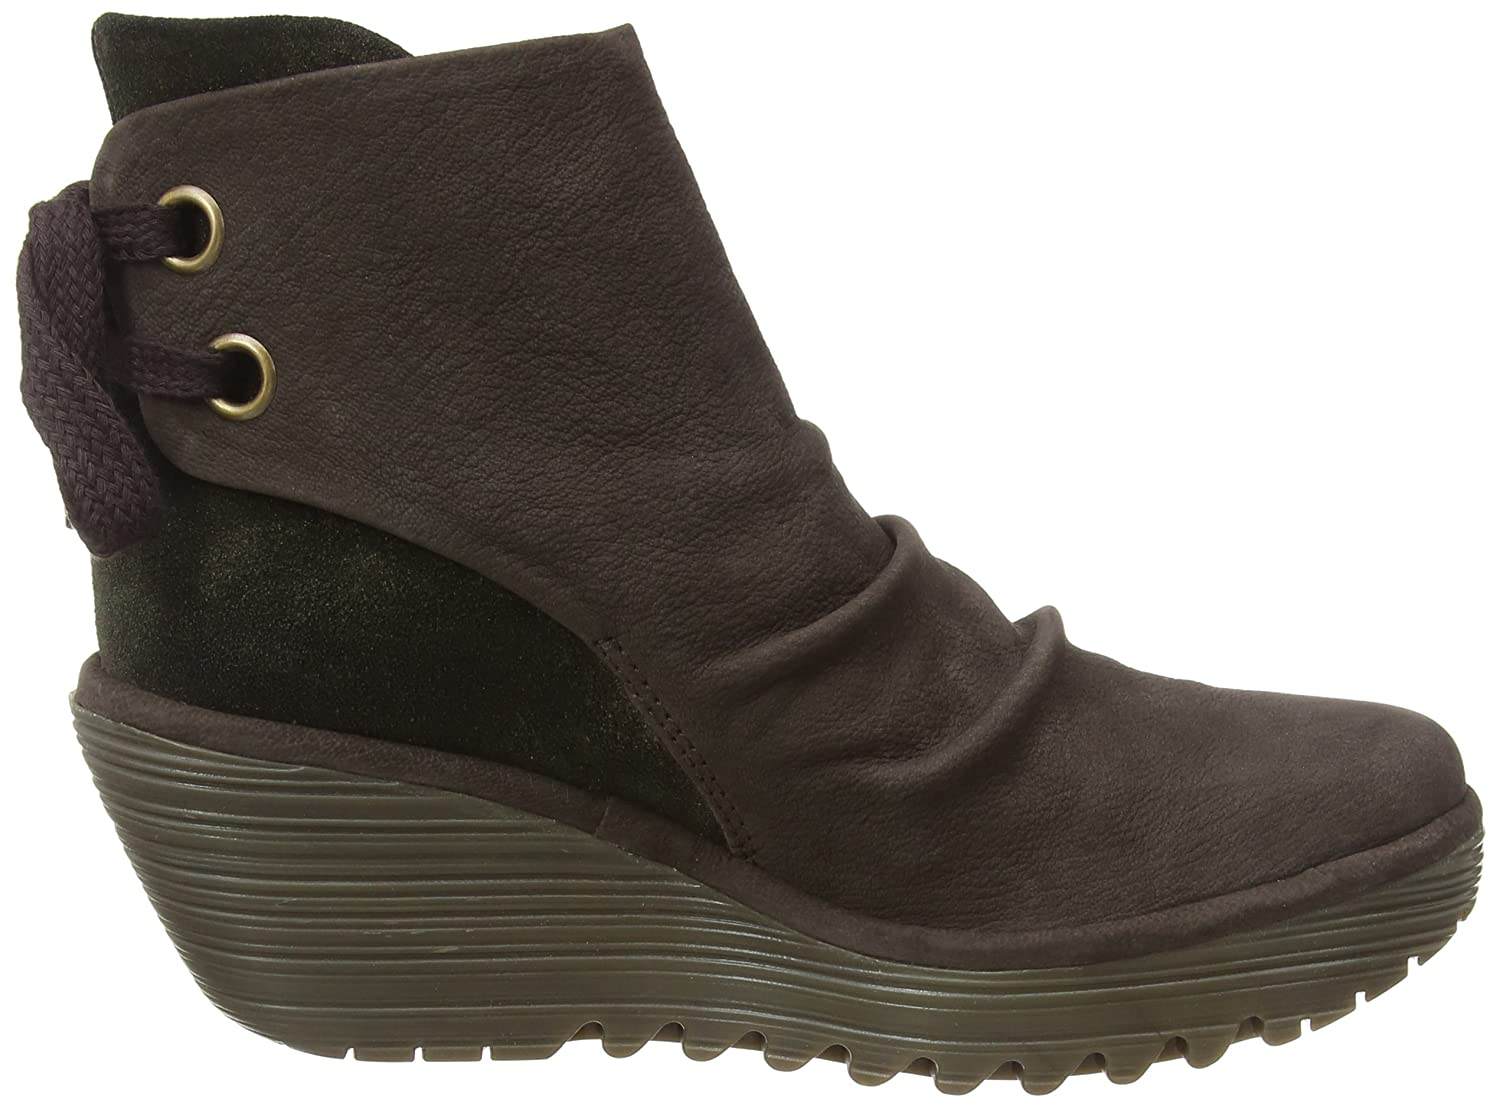 FLY London Womens Yama Ankle Boot